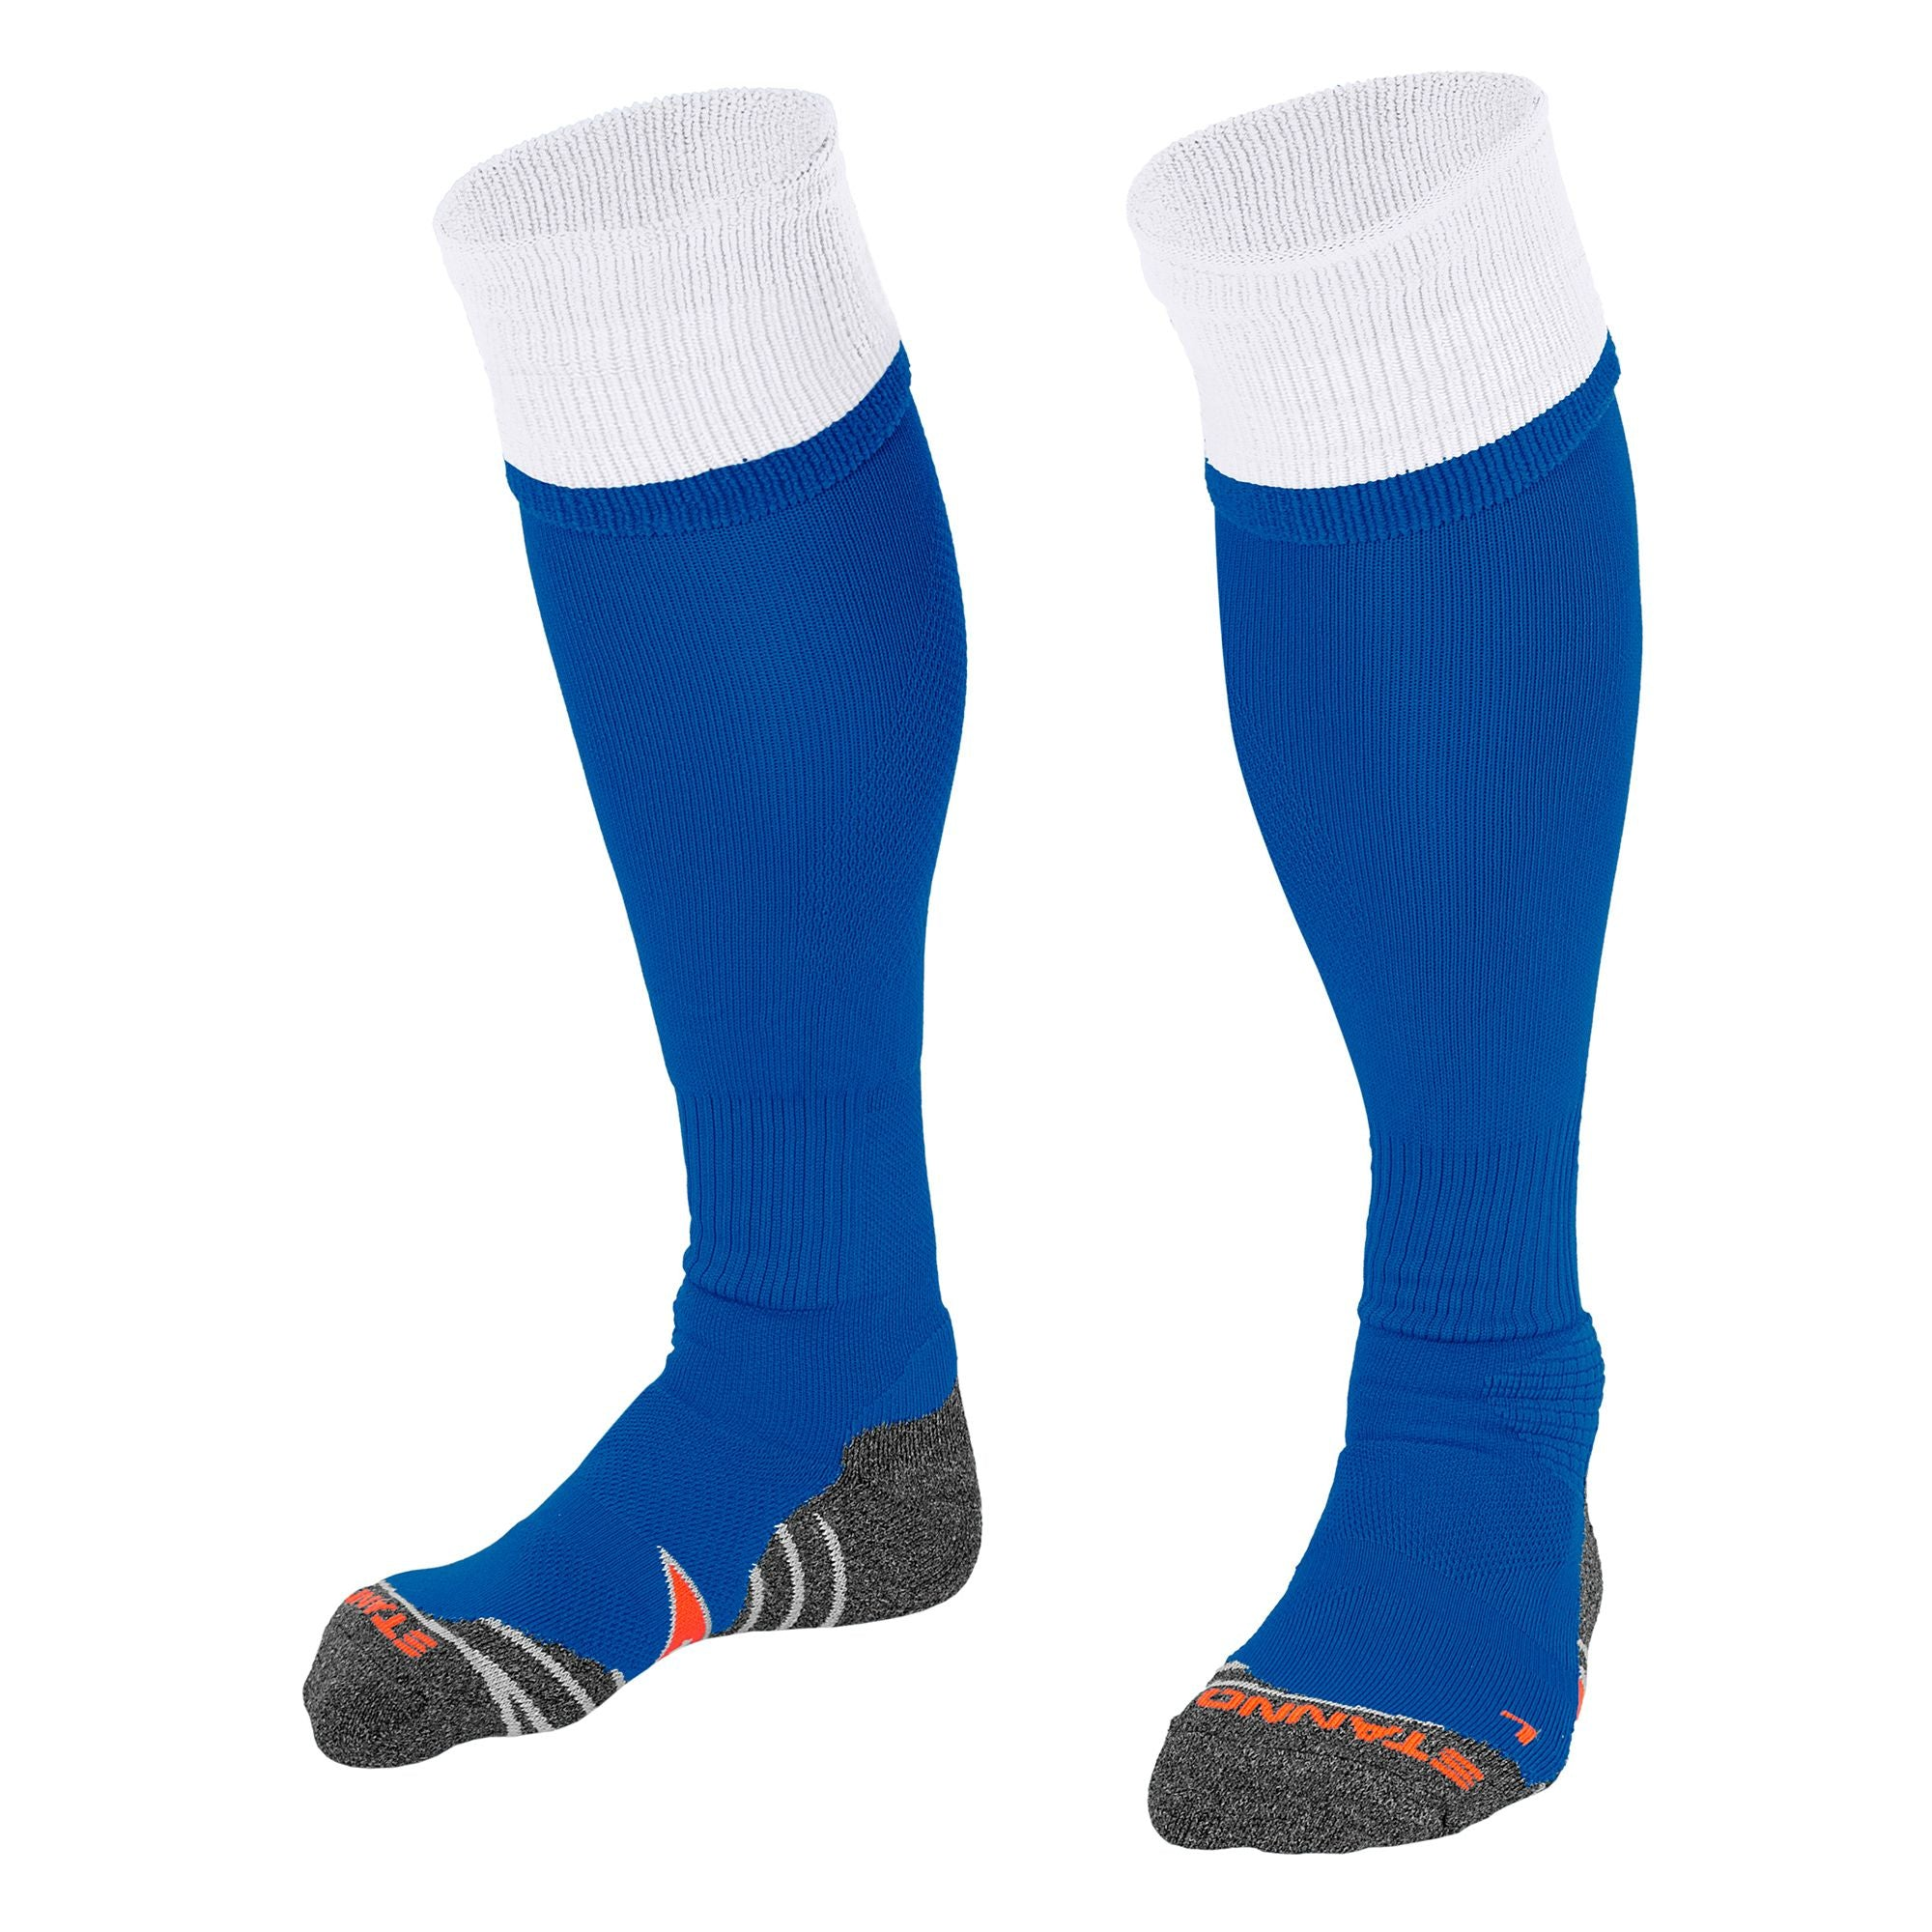 Stanno Combi Sock in royal blue with white contrast tops